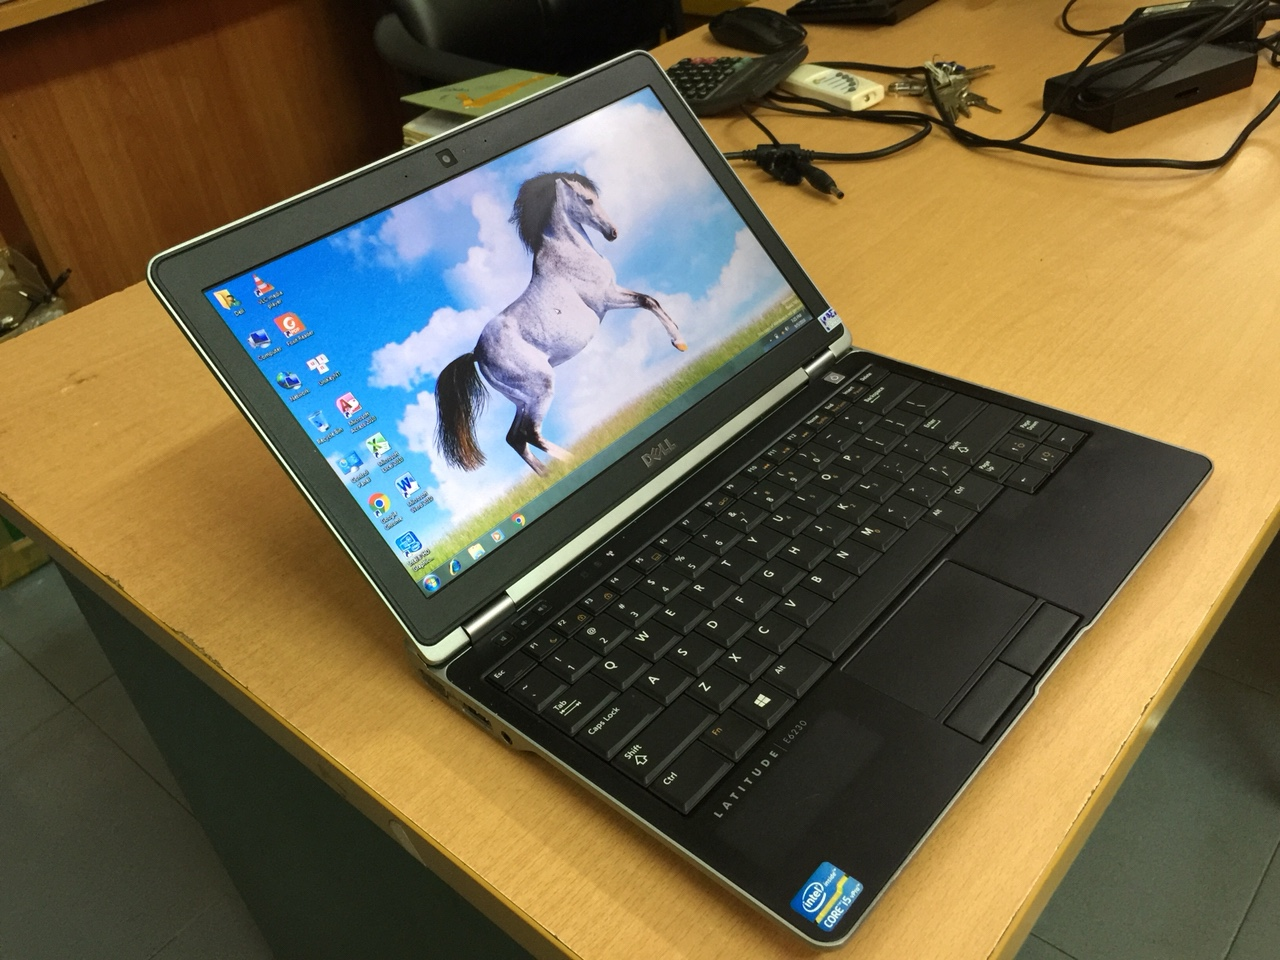 DELL LATITUDE E6230 i5 3320M 4GB 128GB SSD 12.5